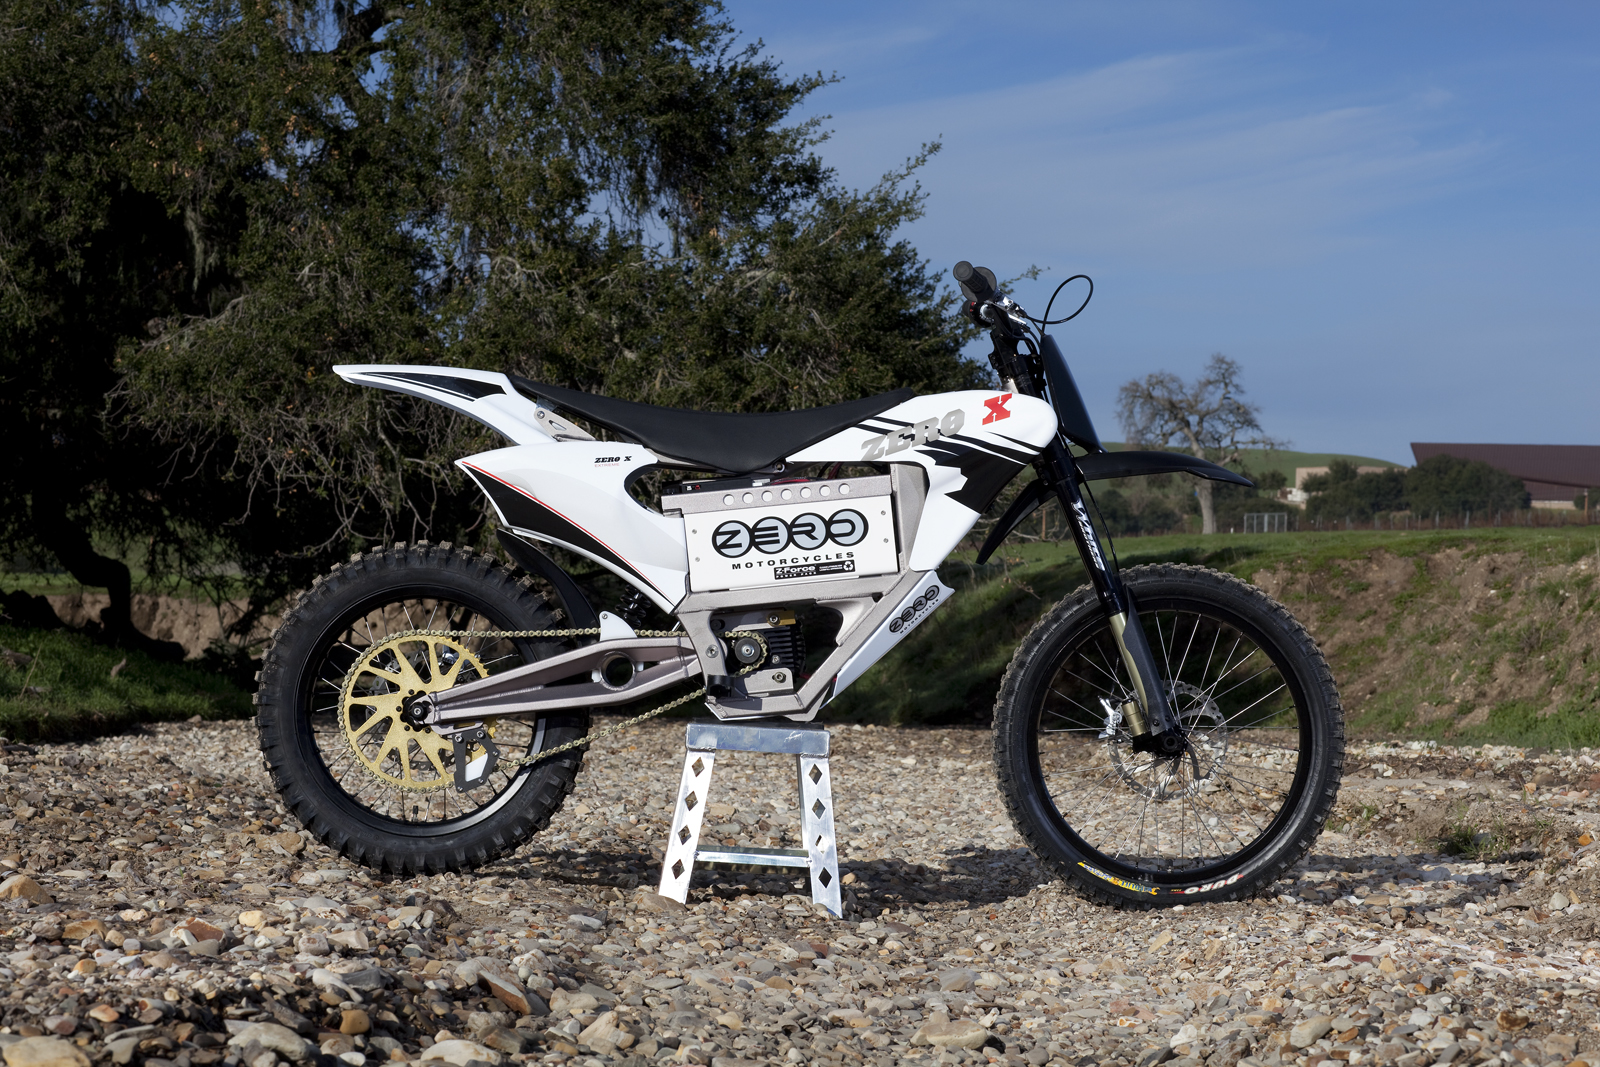 2010 Zero X Electric Motorcycle: Zaca Station - Creek